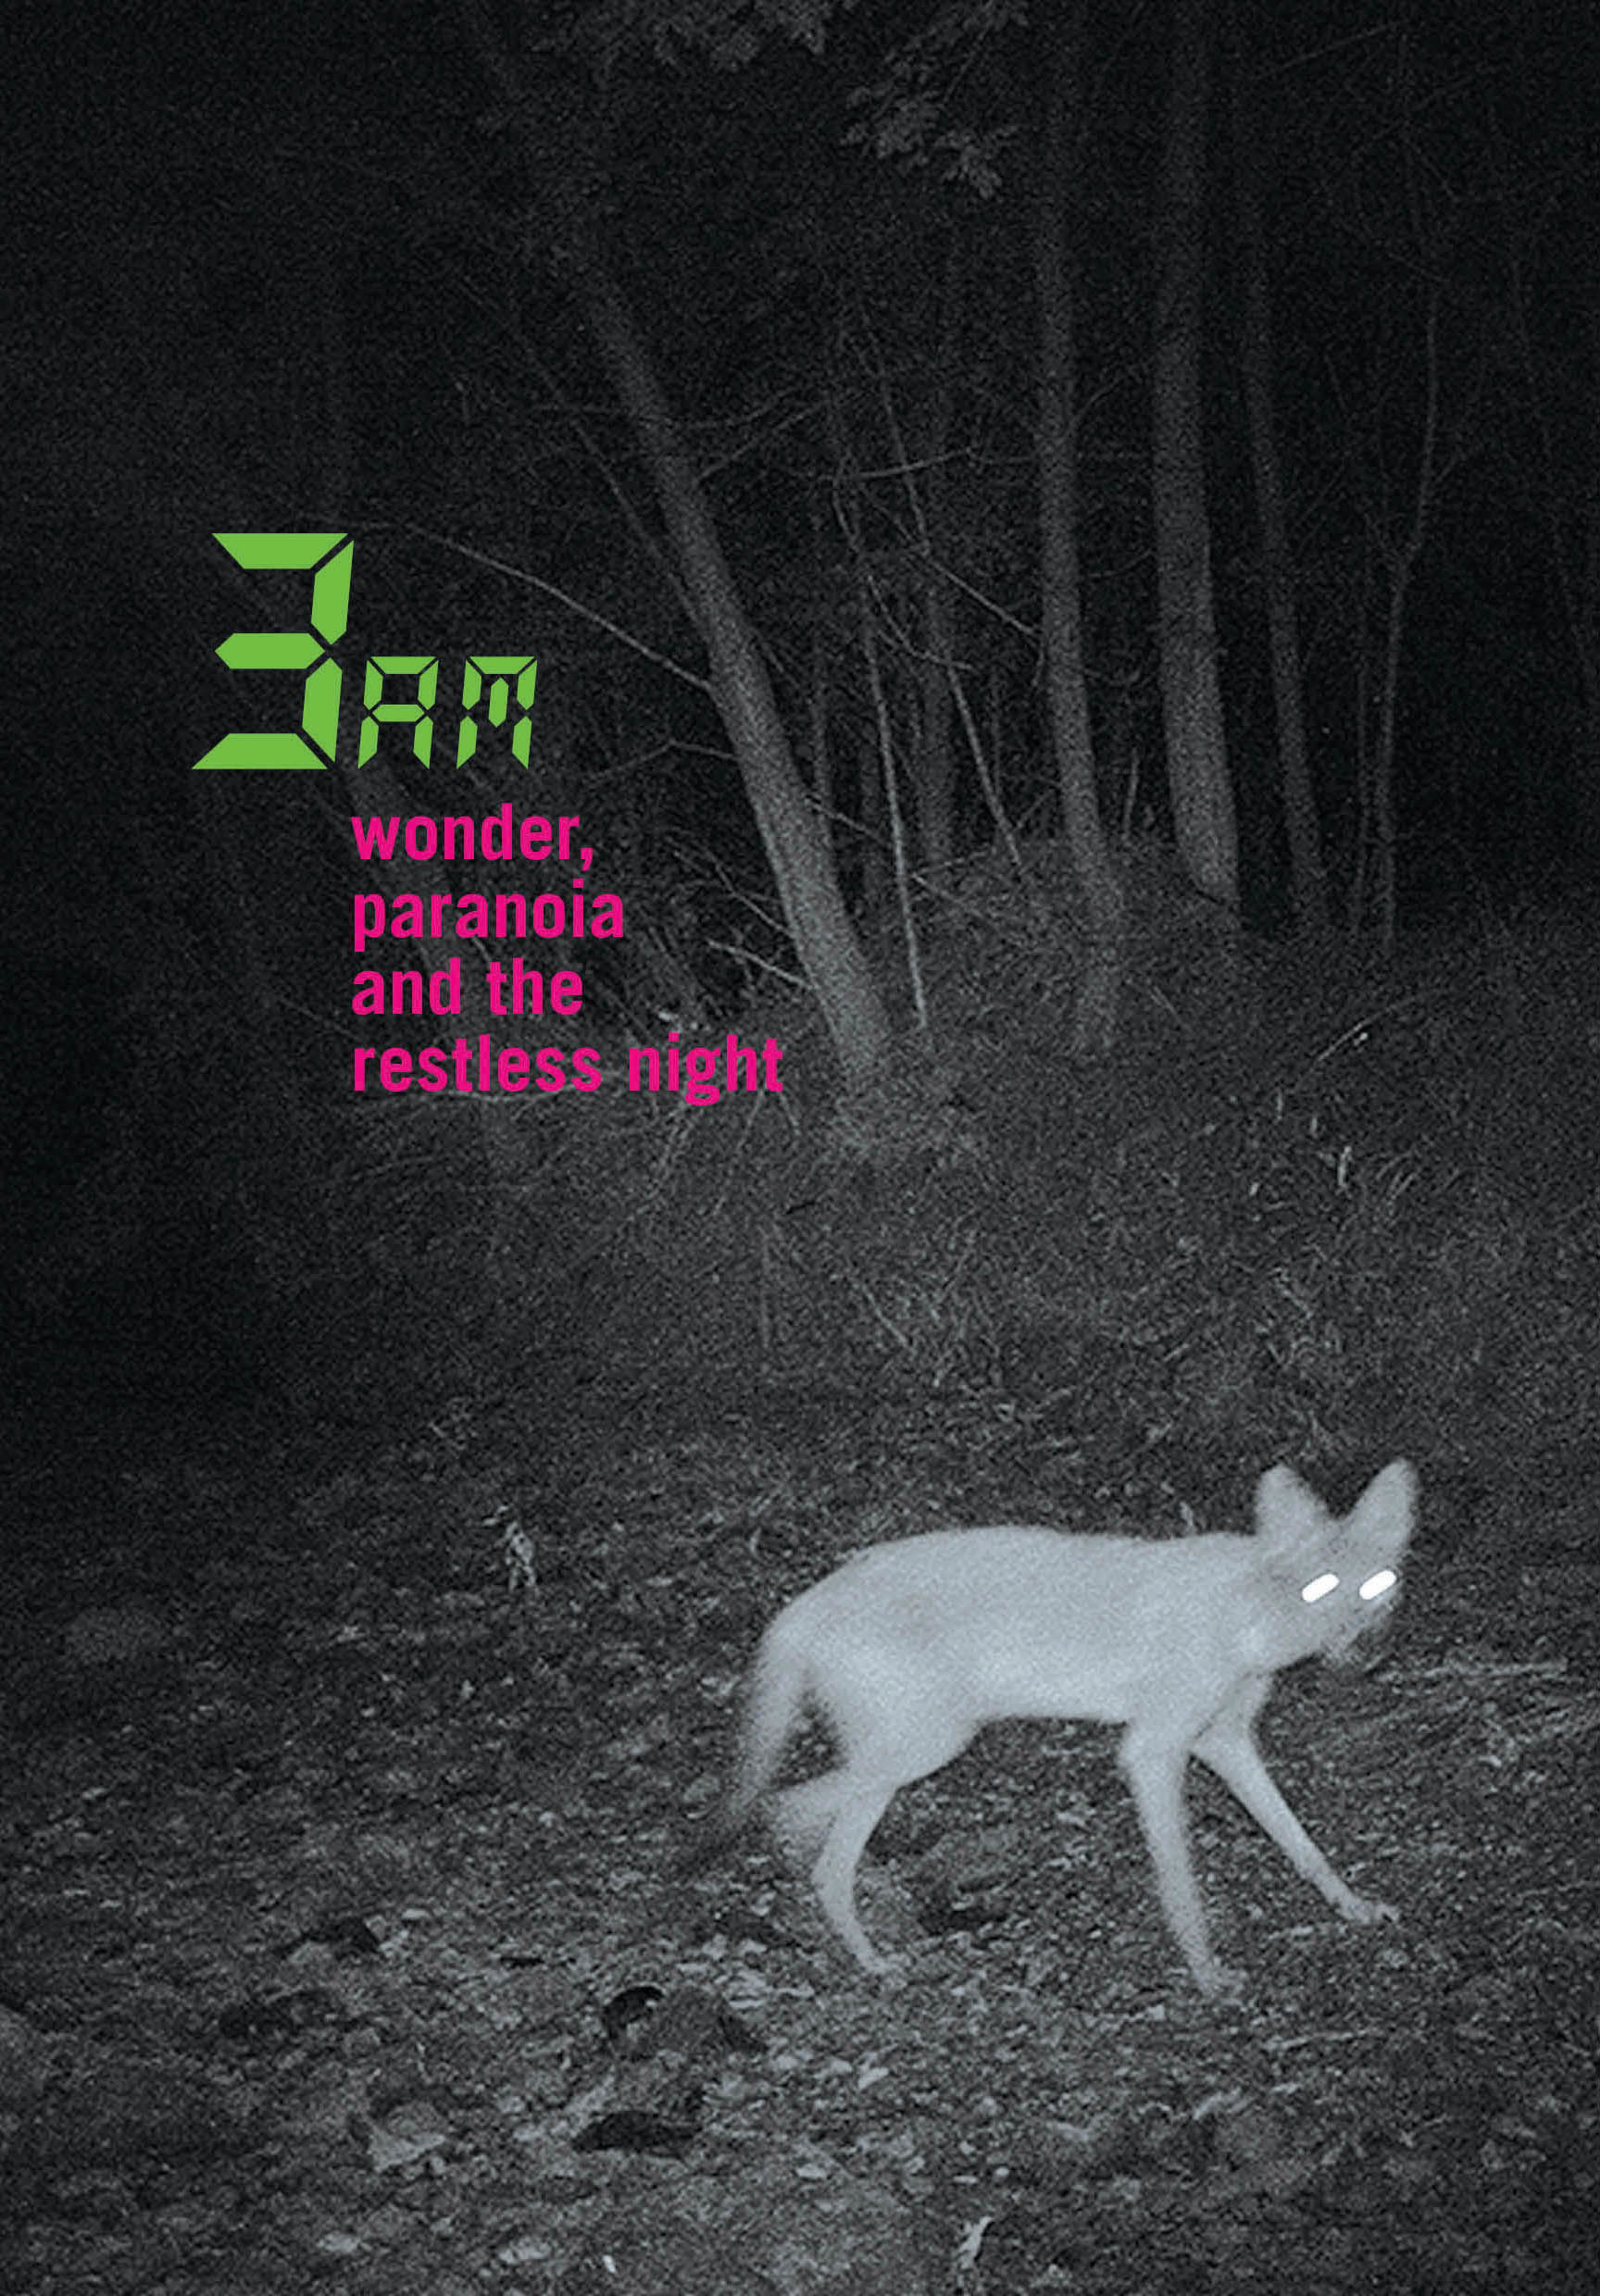 3 am wonder paranoia and the restless night pipa prize